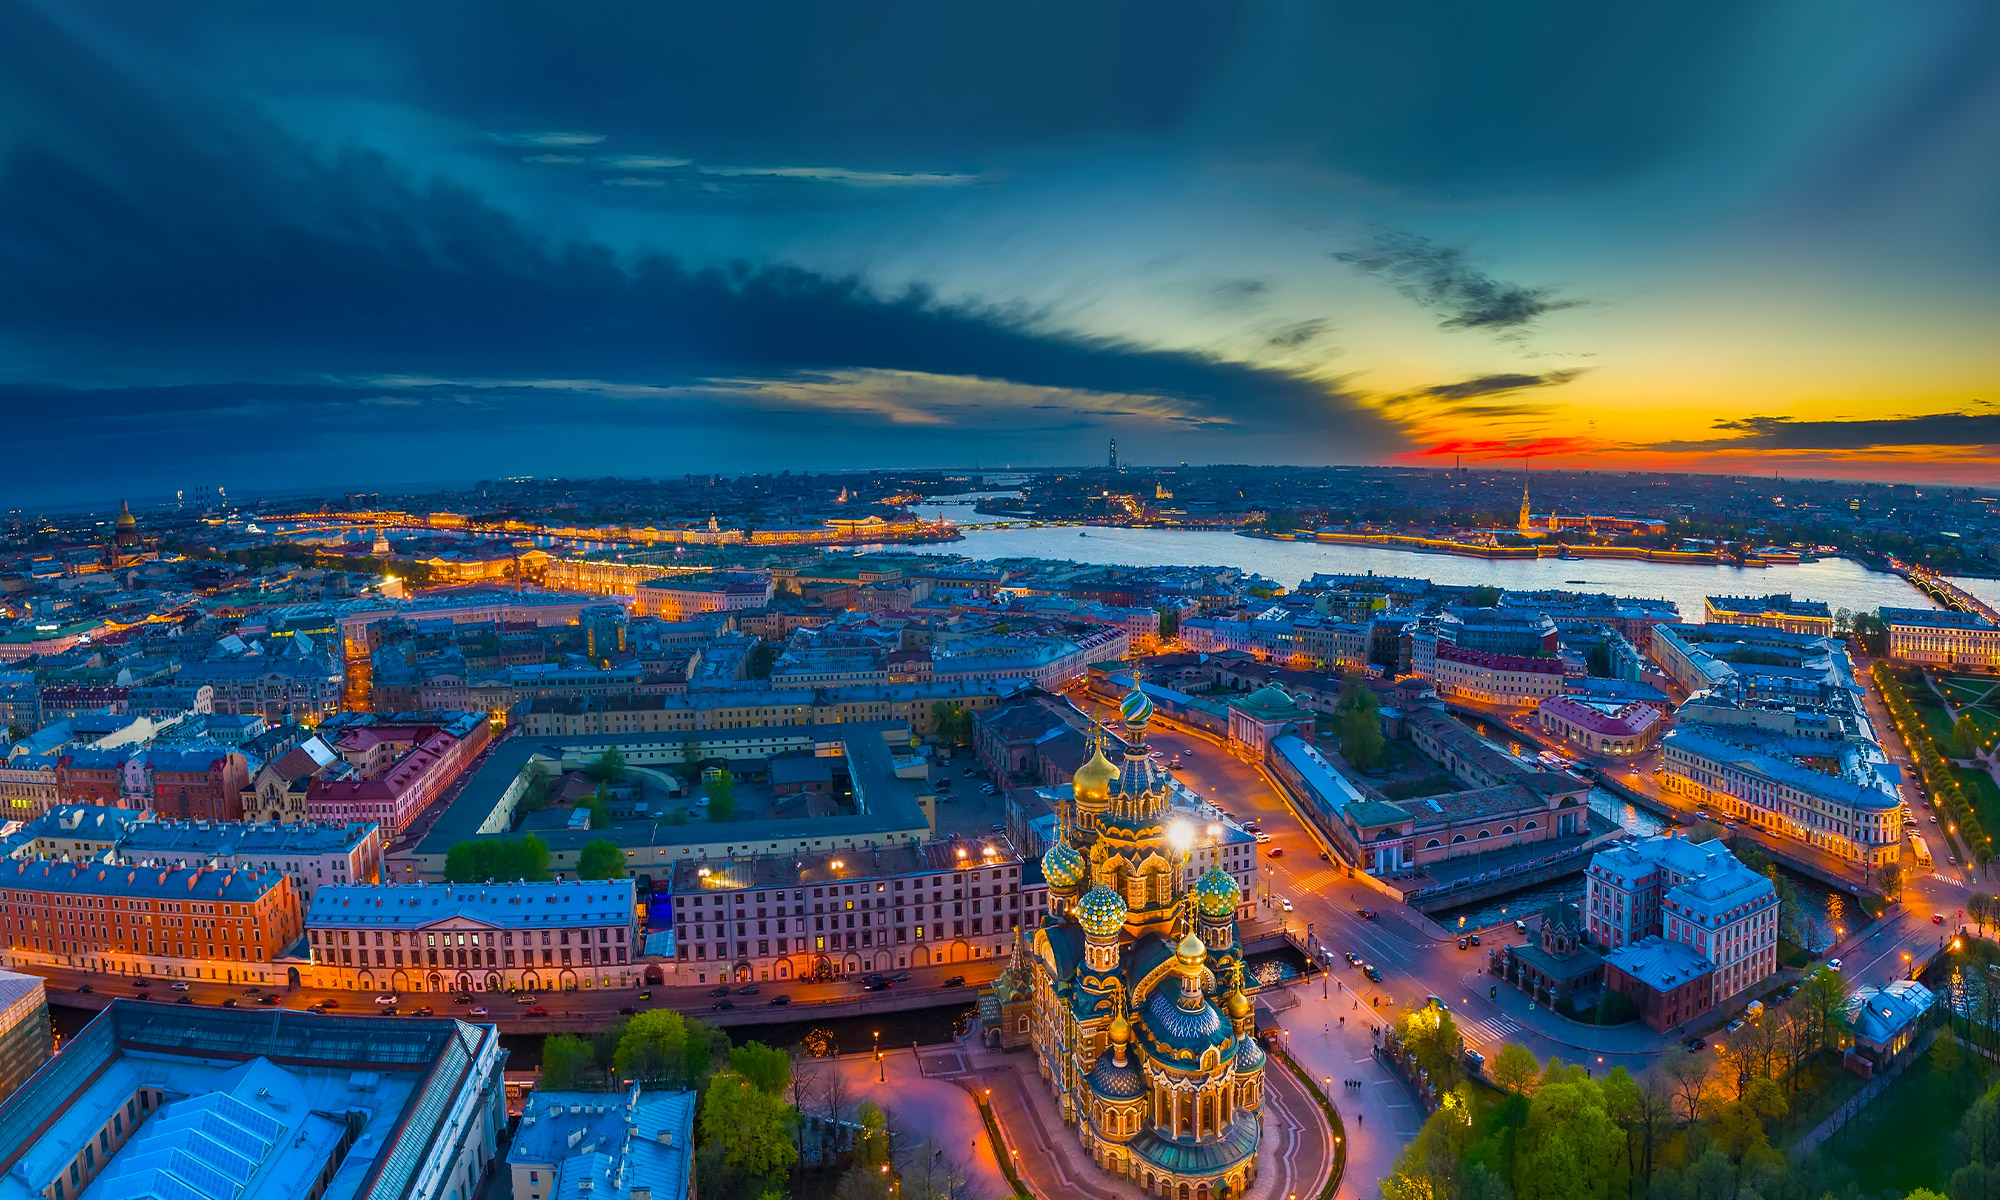 St Petersburg at Dusk, Russia